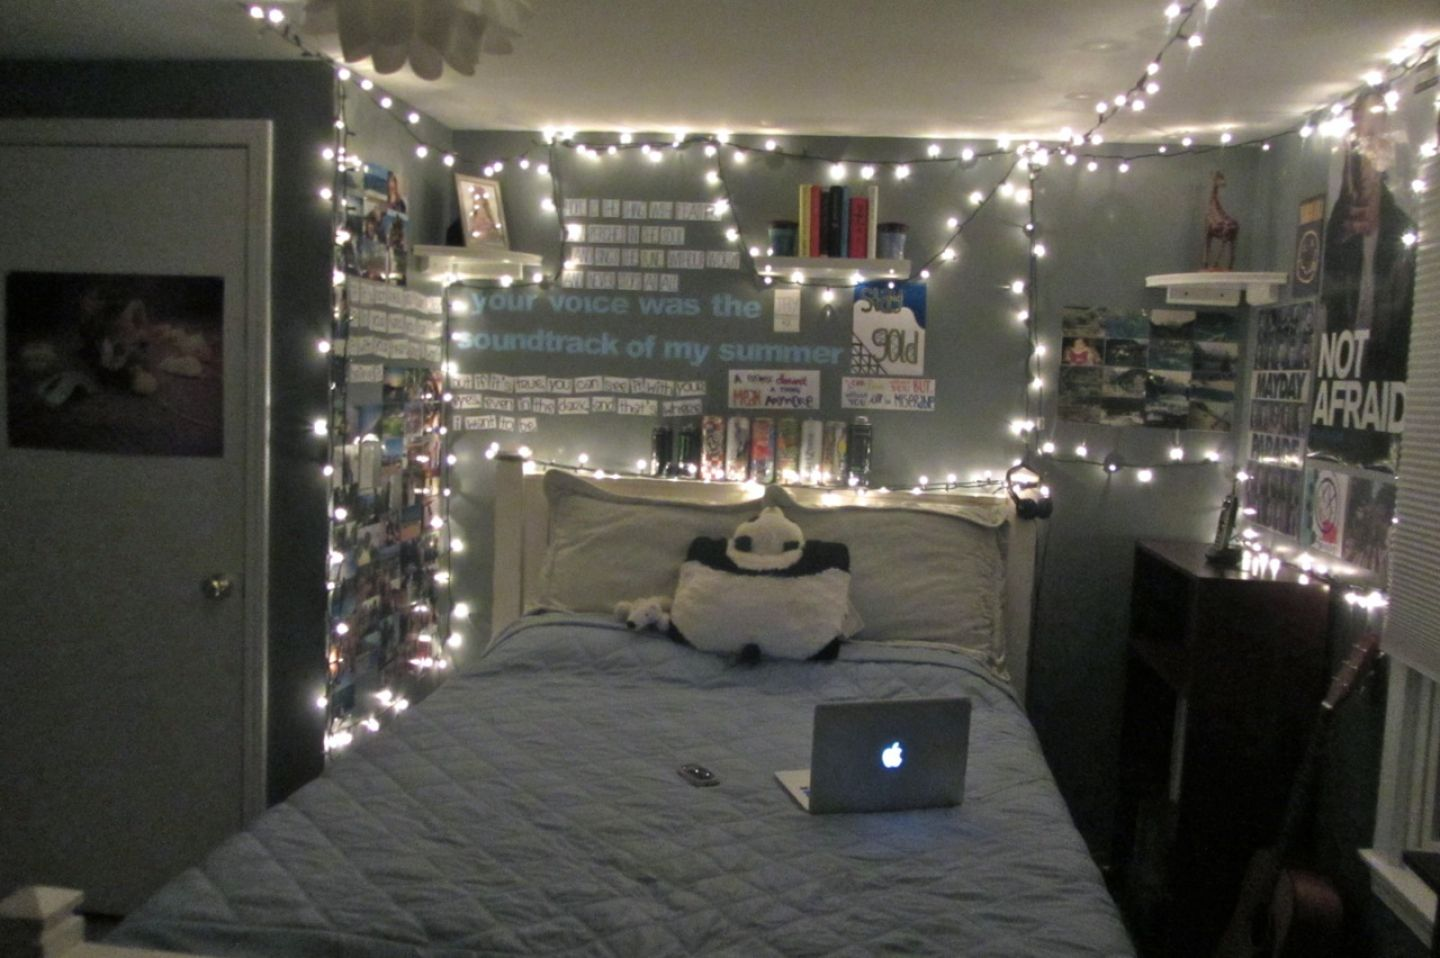 Bedroom girls tumblr ideas - Bedroom Tumblr Girl Bedrooms With Awesome Light And Imac On The Bed Cool Bedrooms Tumblr Design